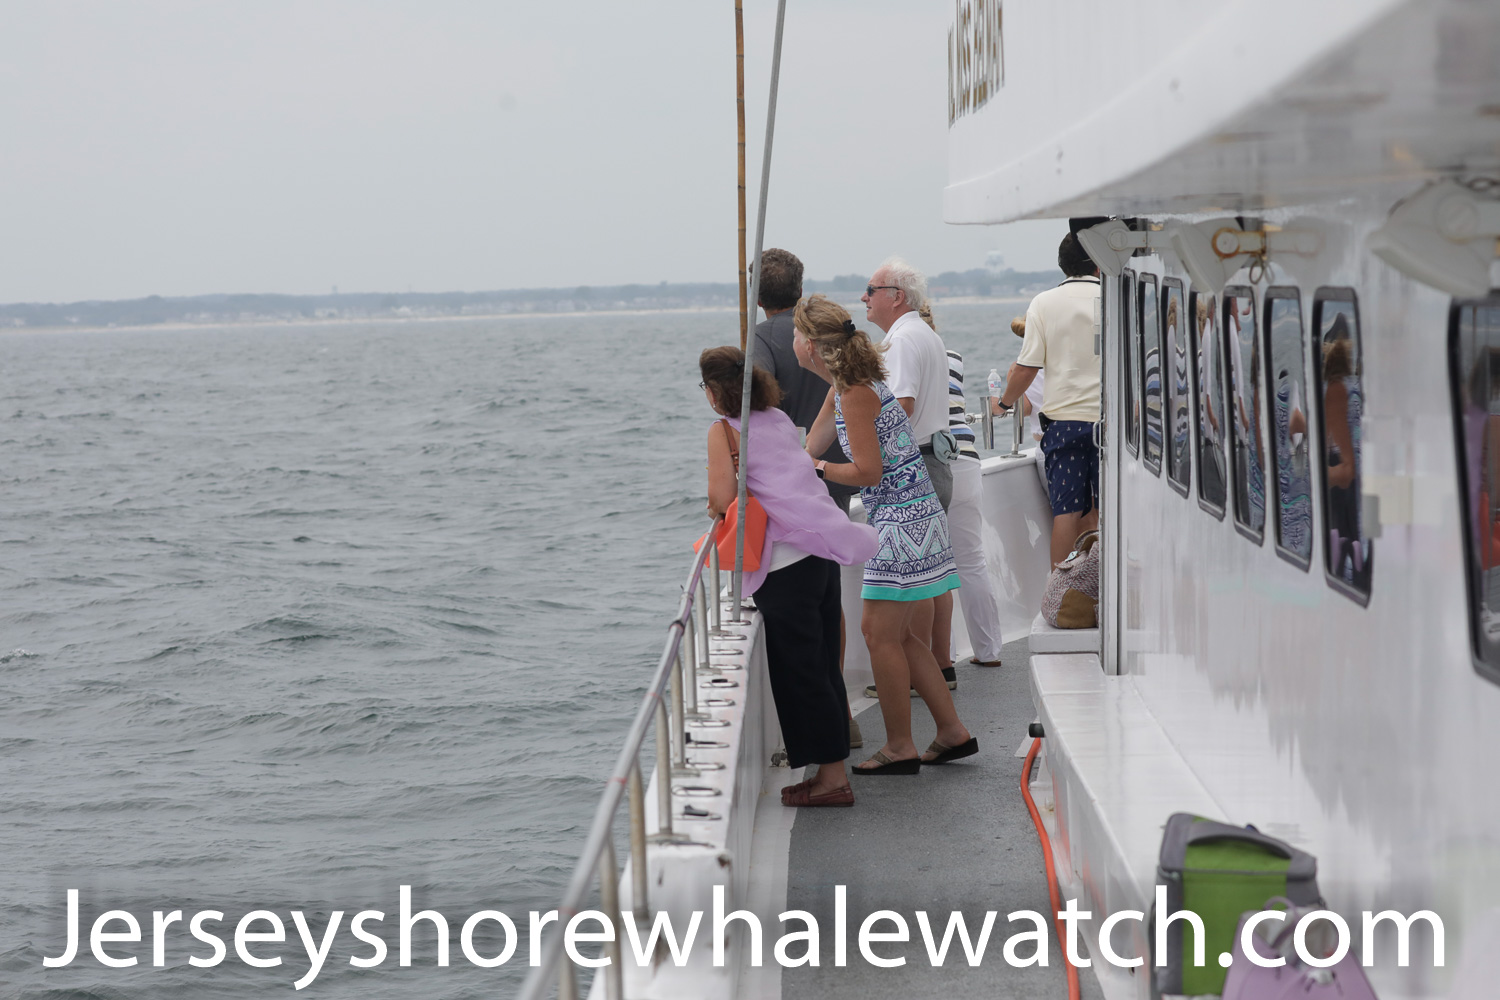 , Fundraiser Whale Watching Sunset trip last night Belmar, Jersey Shore Whale Watch Tour 2020 Season